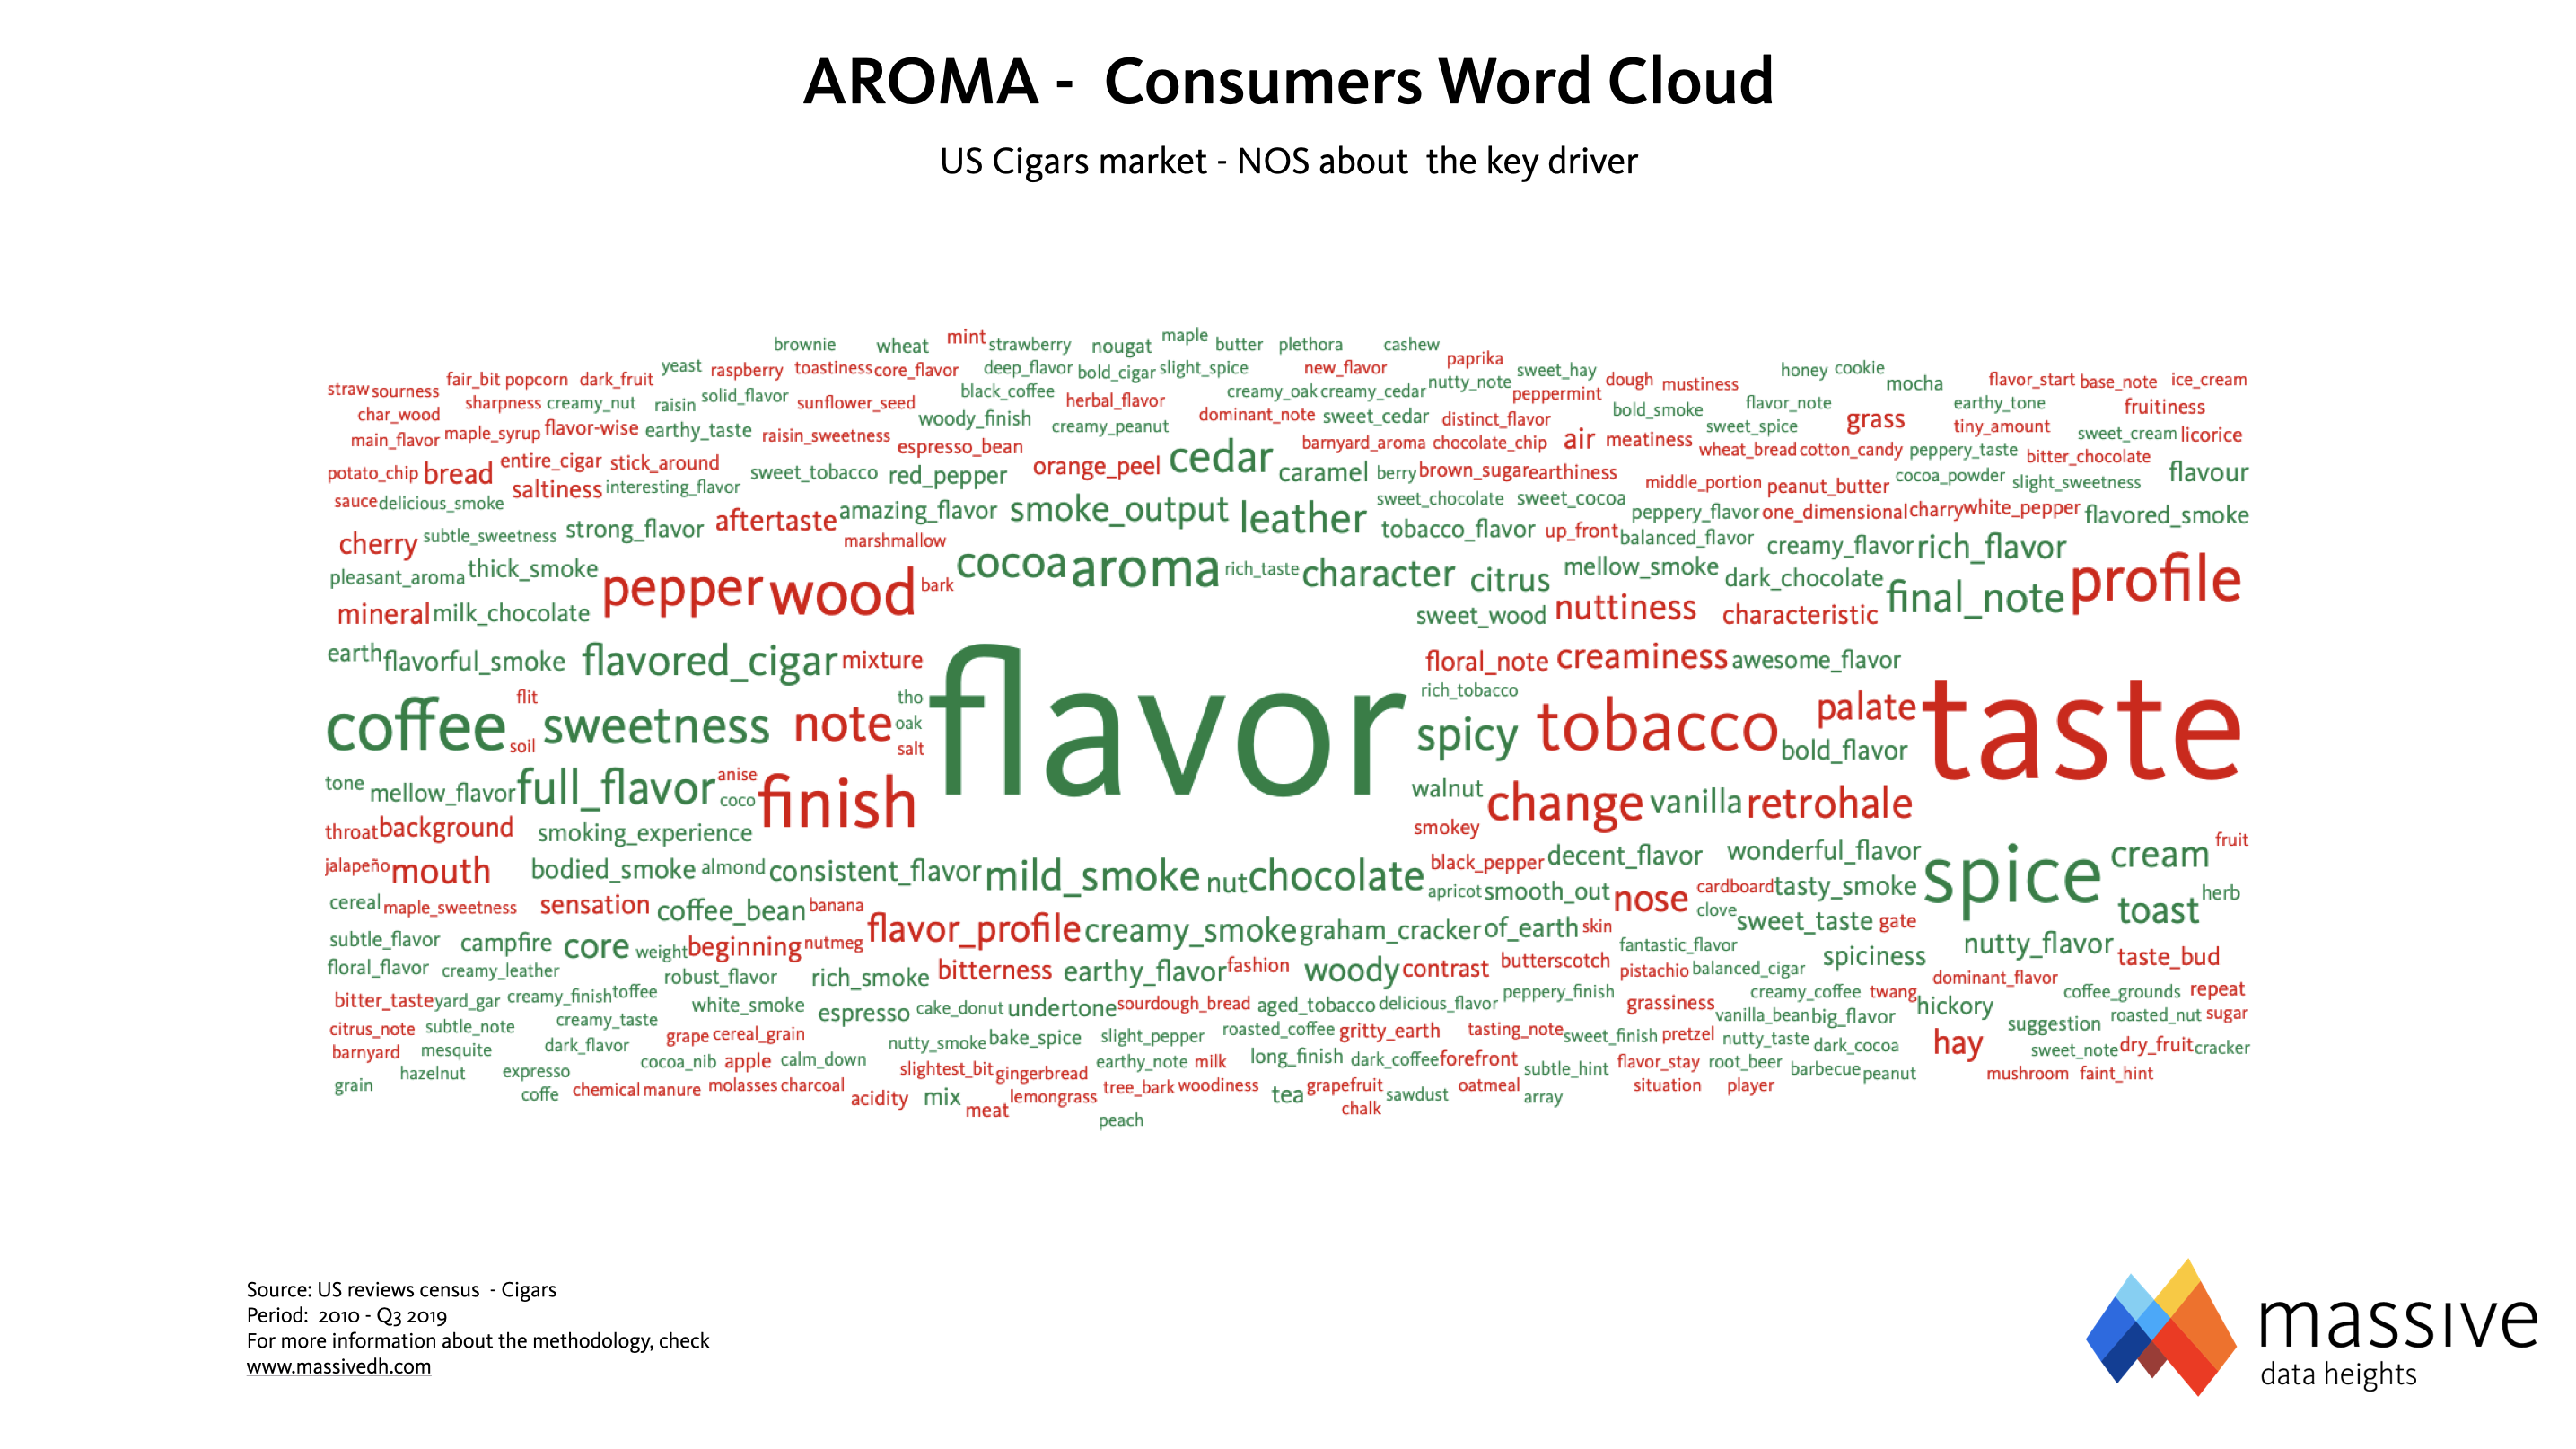 MASSIVE - Cigars Aroma Word Cloud